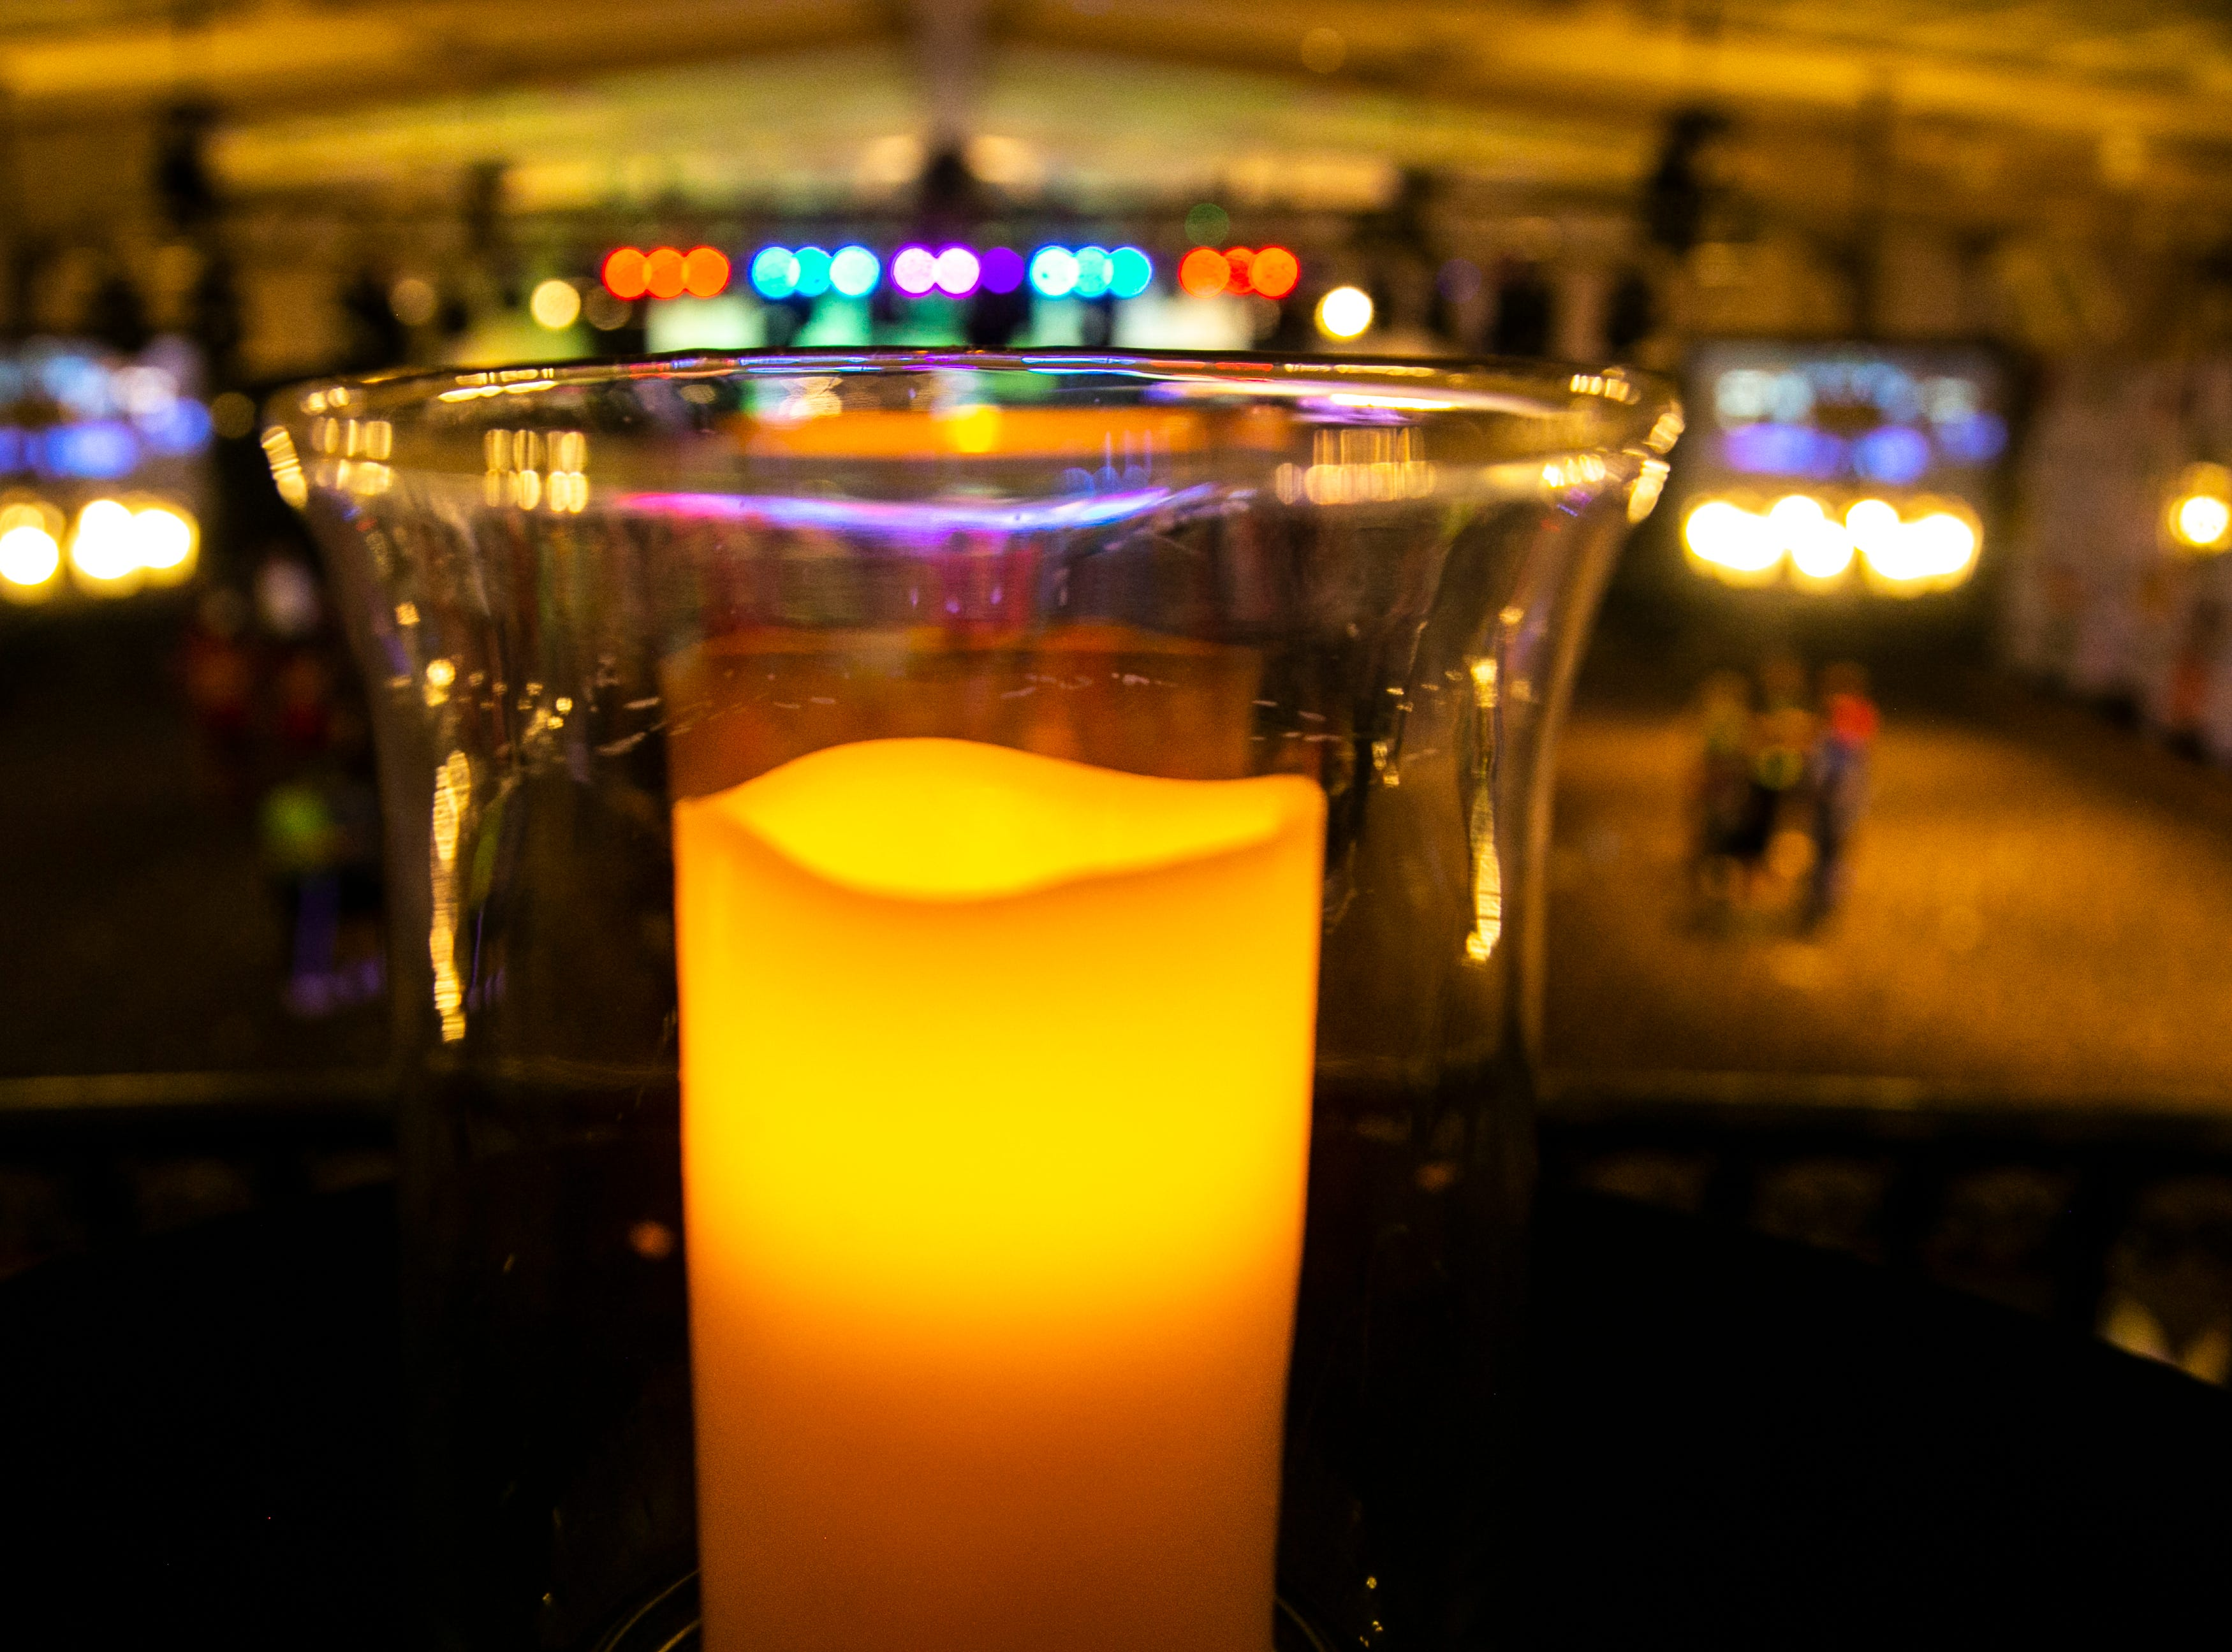 A candle overlooks the ballroom during the University of Iowa Dance Marathon 25 on Saturday, Feb. 2, 2019, at the Iowa Memorial Union in Iowa City, Iowa.